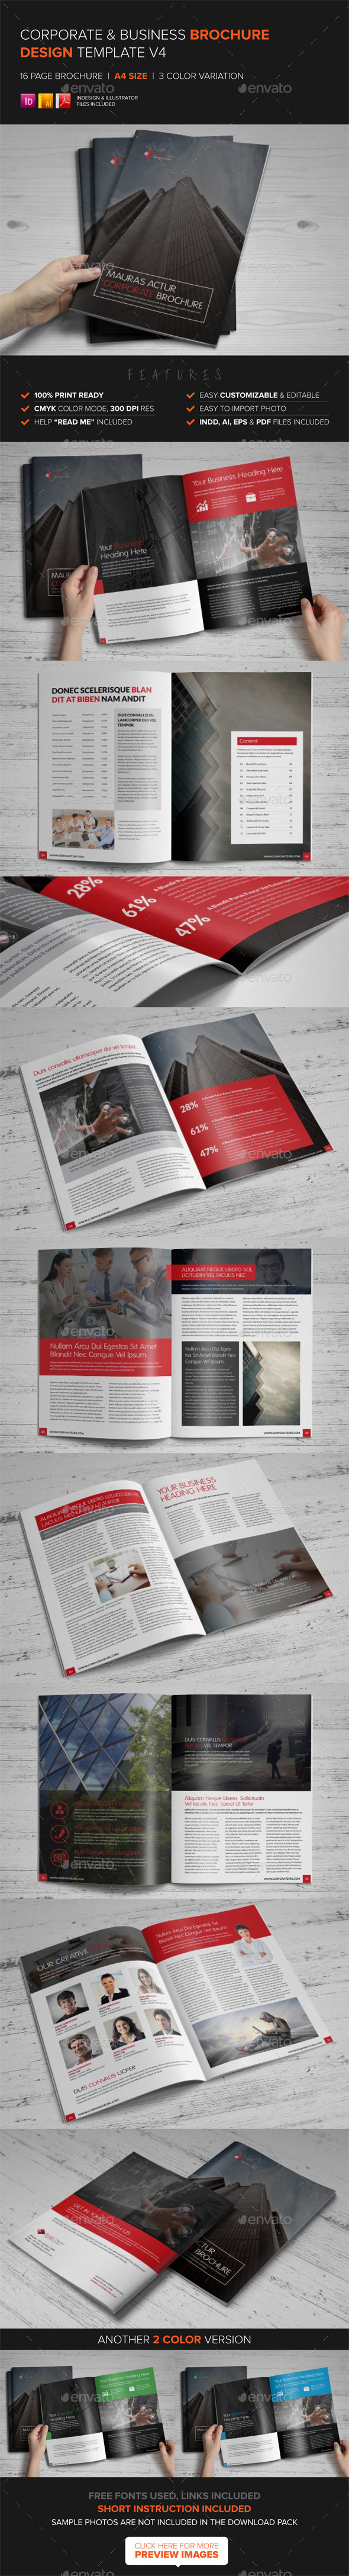 Corporate Multipurpose Brochure Template v4 - Corporate Brochures